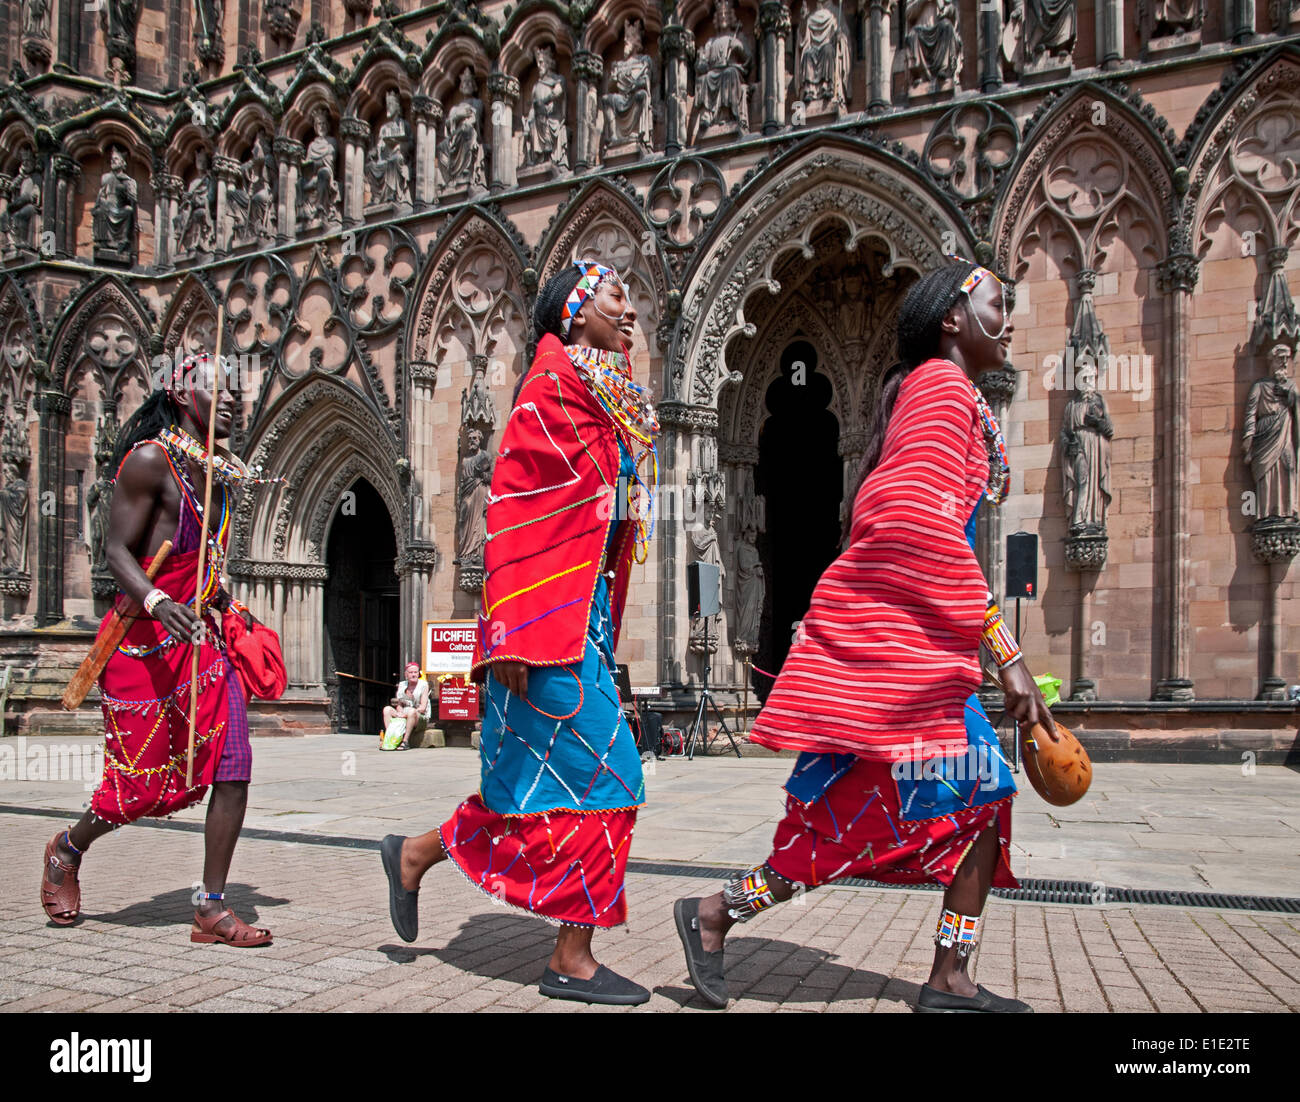 Lichfield, UK. 01st June, 2014. Maasai dancers entertaining people at Lichfield Cathedral Staffordshire England on Sunday 1st June 2014.  They visited Lichfield as part of a tour raising funds to benefit their villages back home in Kenya Credit:  David Keith Jones/Alamy Live News - Stock Image